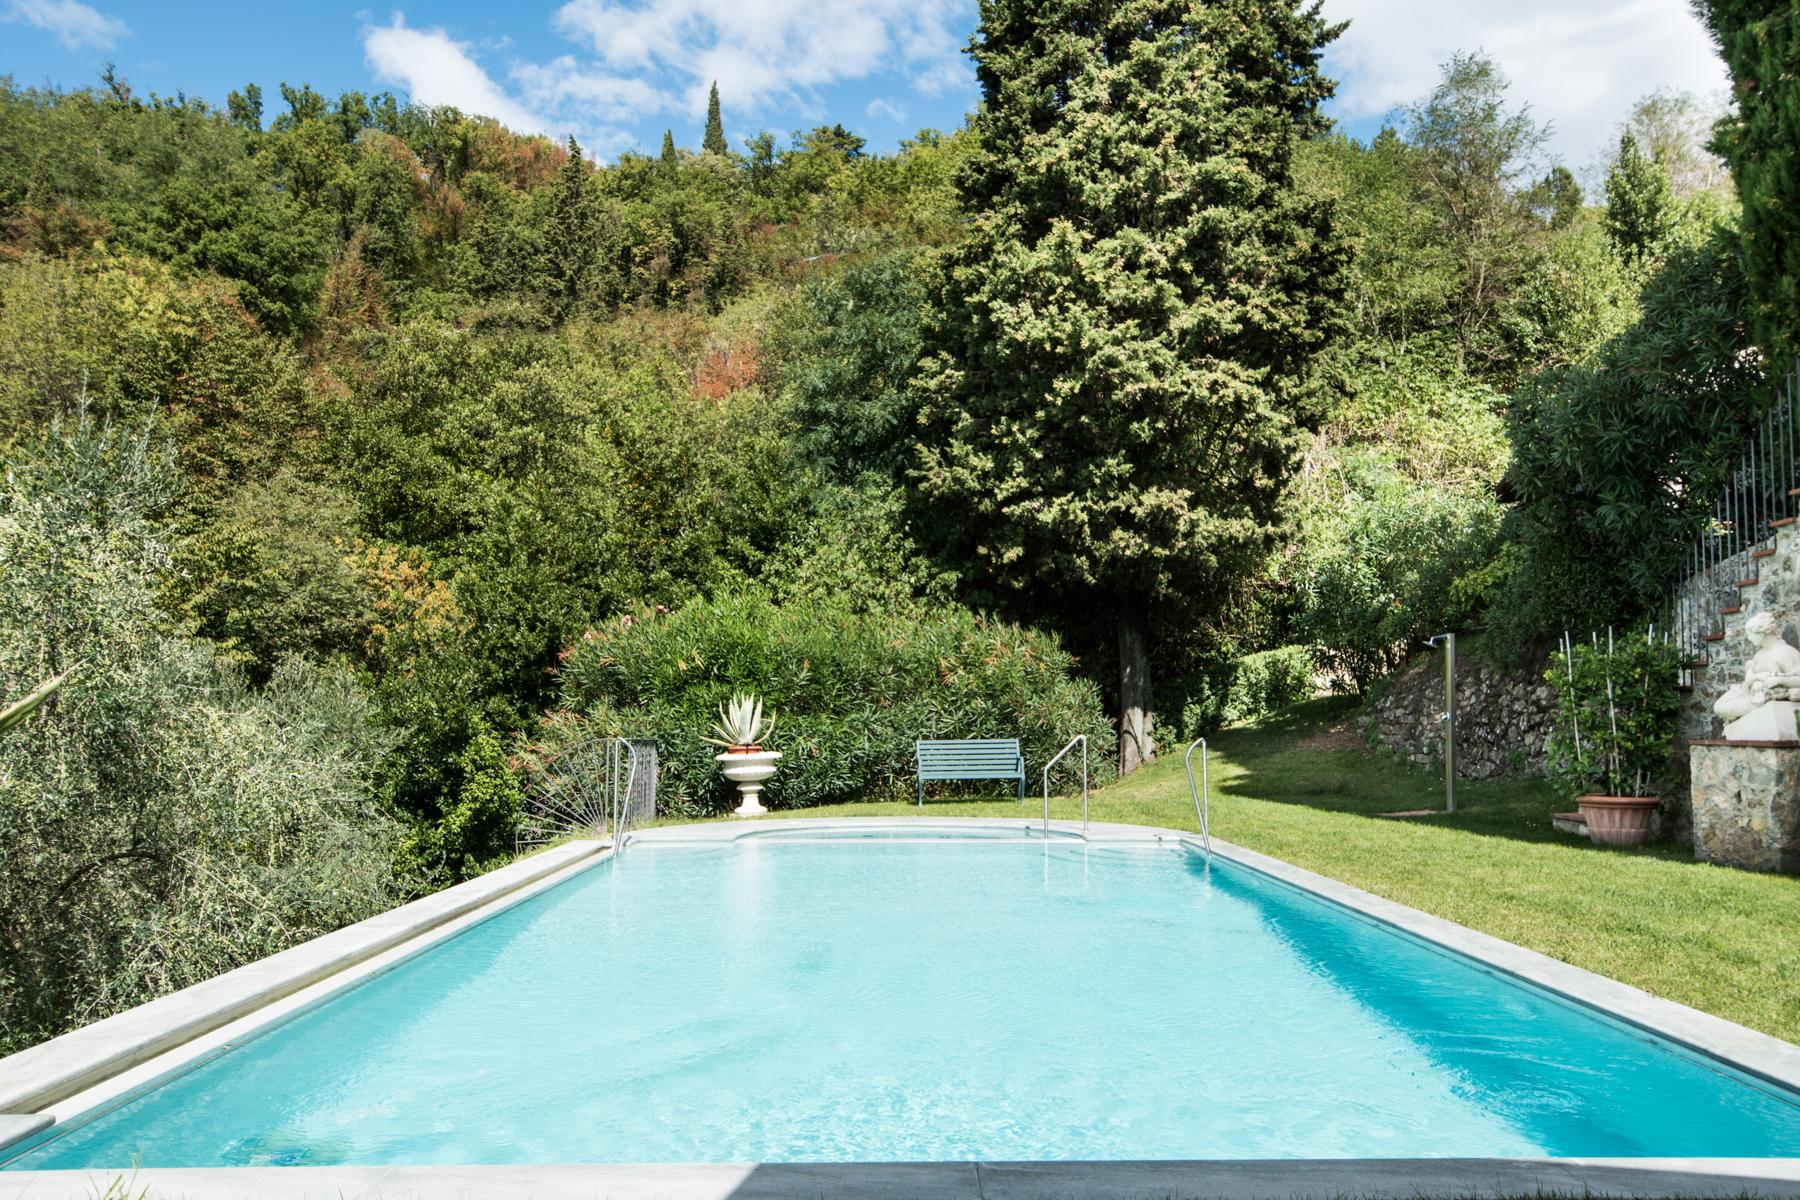 Marvelous villa in the countryside of Lucca - 39